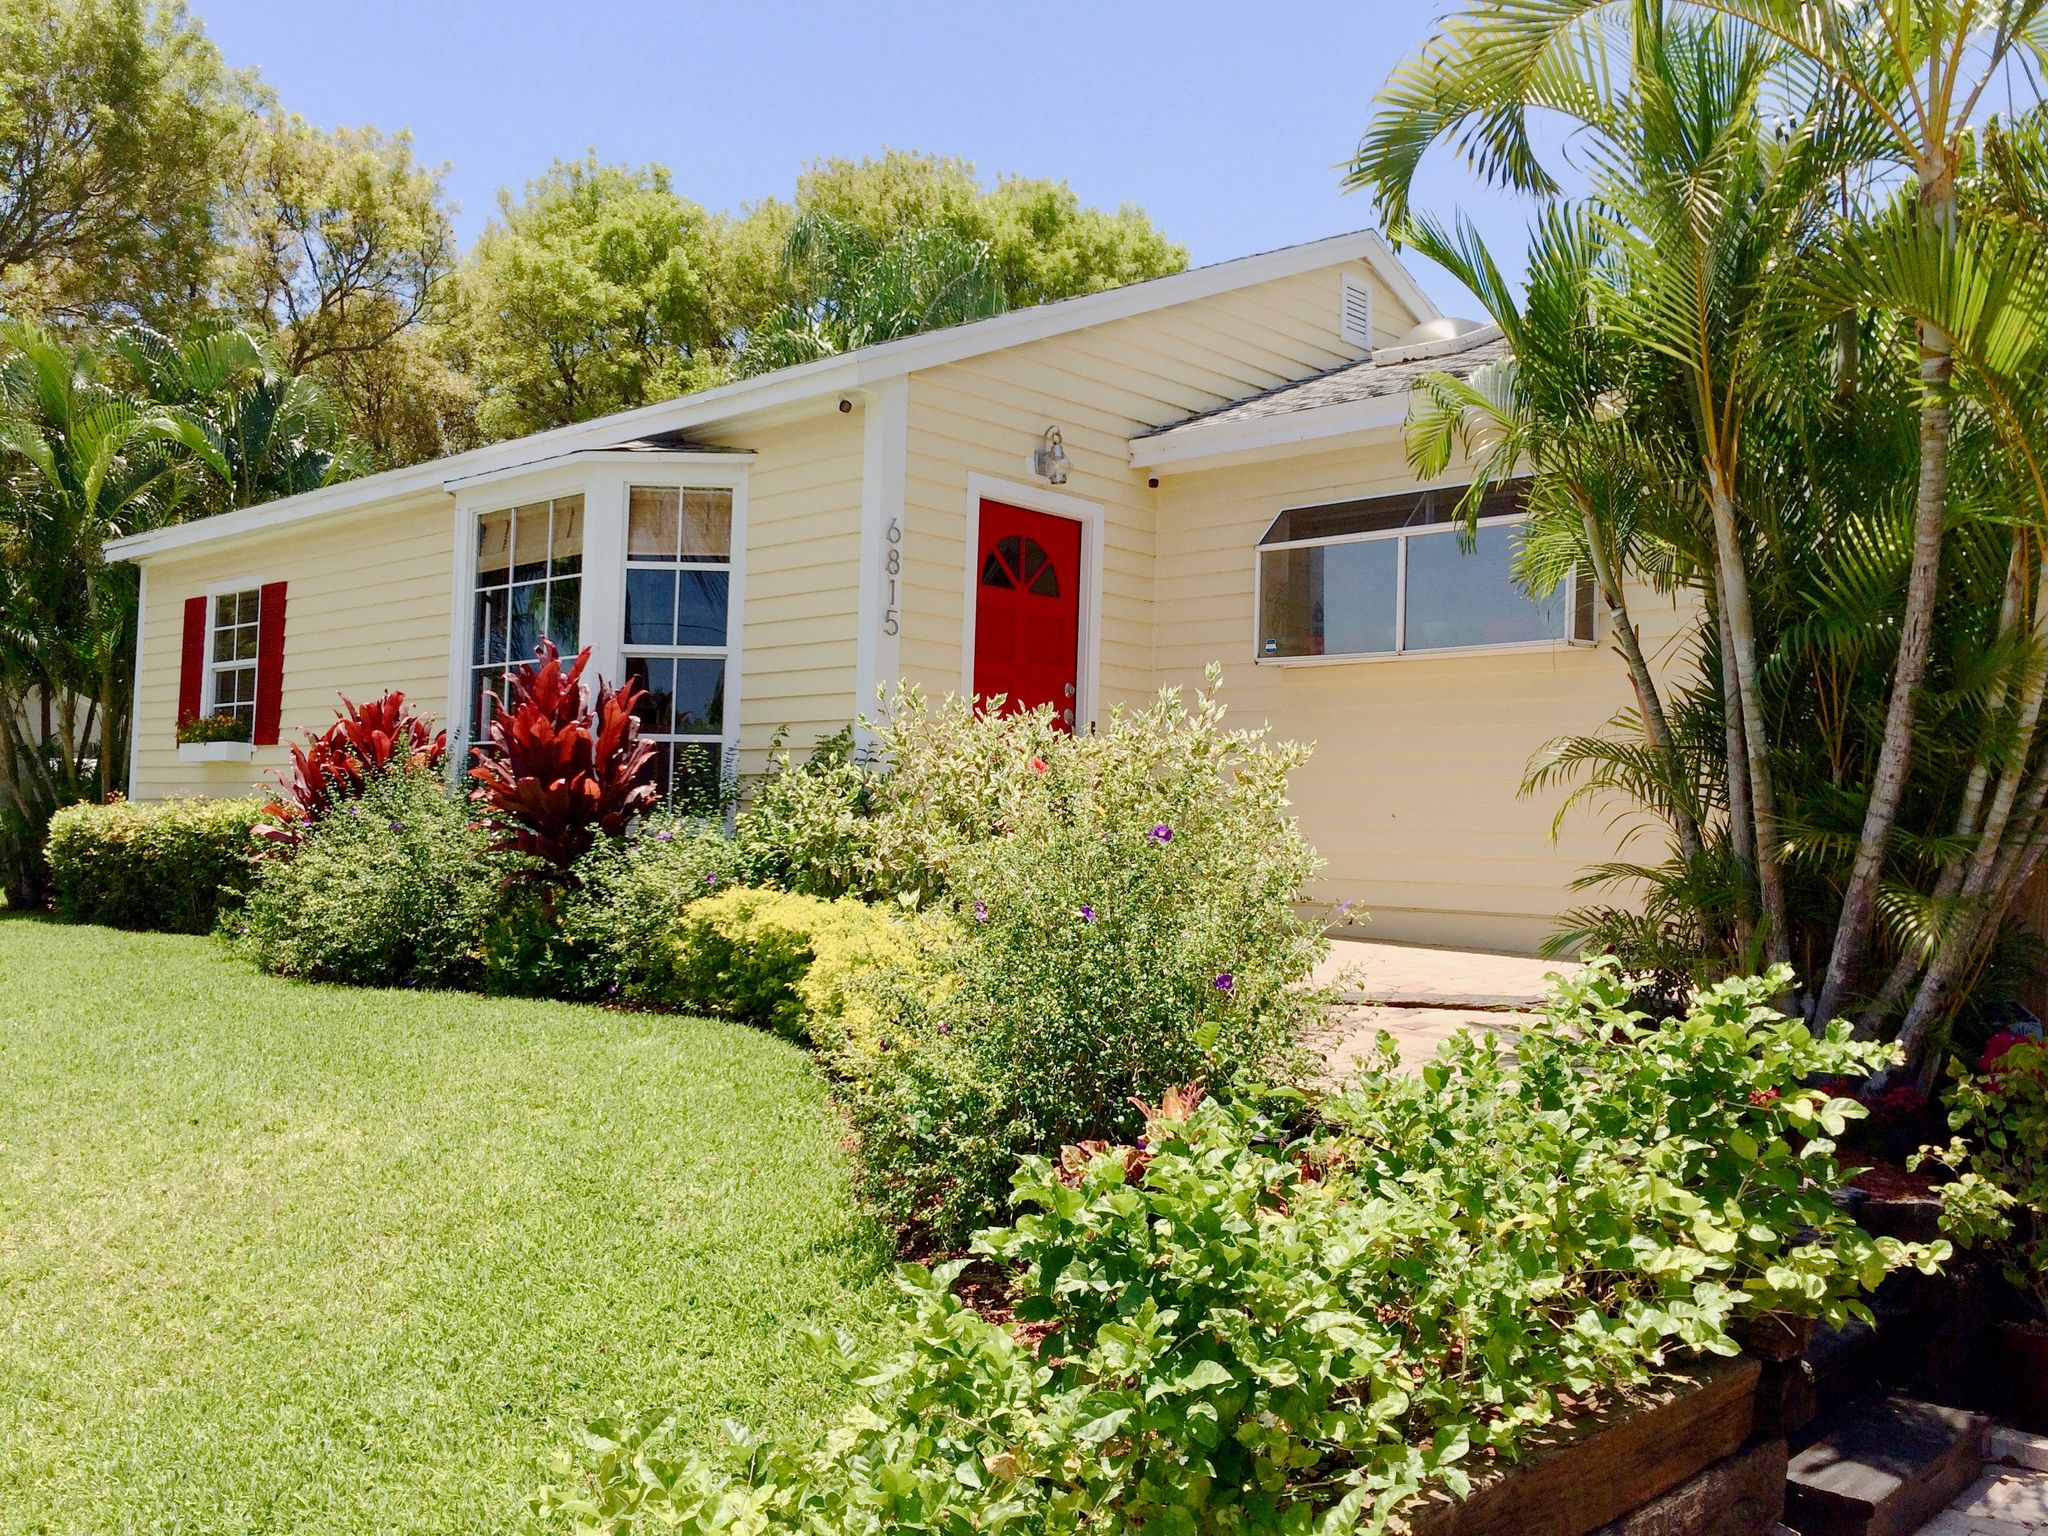 6815 Lake Ave, West Palm Beach, FL 33405 - Estimate and Home Details ...